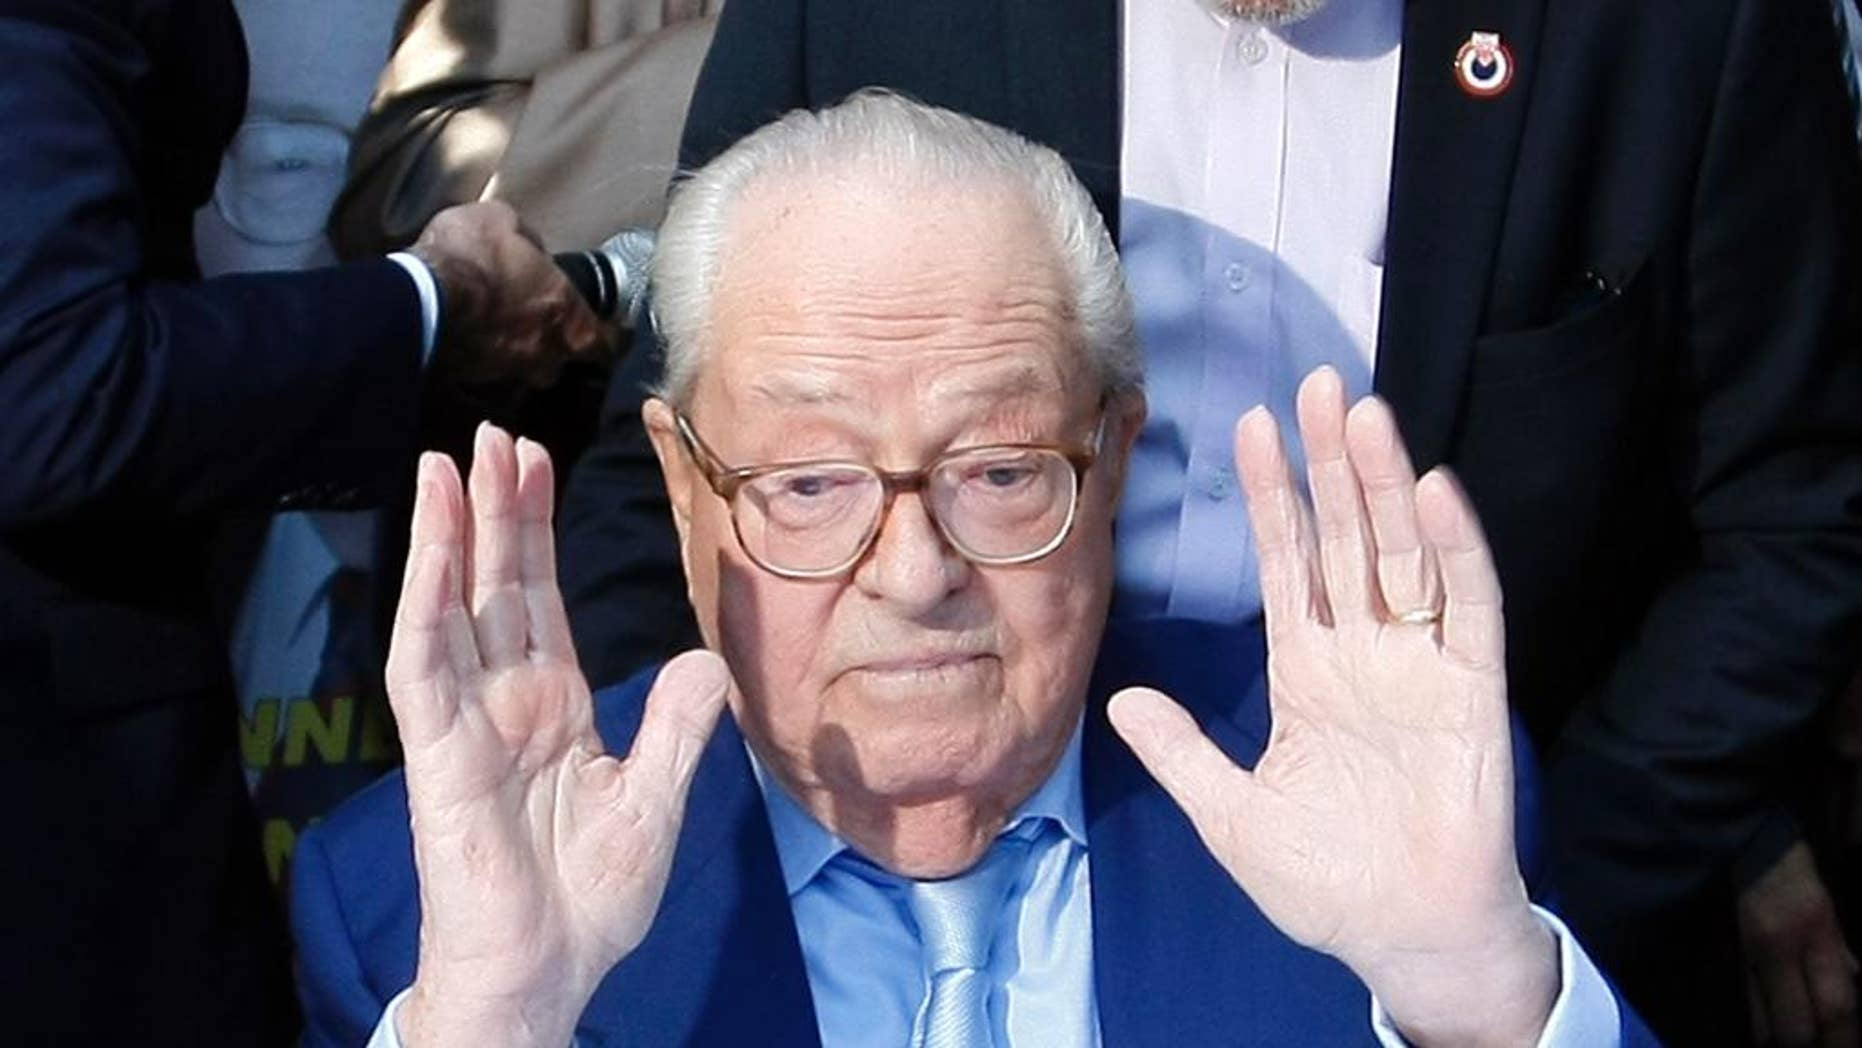 FILE - In this Sept. 5, 2015 file photo, Jean-Marie le Pen, former head of the far-right party National Front, gestures after a press conference in Marseille, southern France. Jean-Marie Le Pen on Wednesday OCT. 5, 2016 asked a court to force the party he founded to let him back in, after he was expelled for anti-Semitic comments that embarrassed his daughter Marine as she pursues the French presidency. (AP Photo/Claude Paris, File)